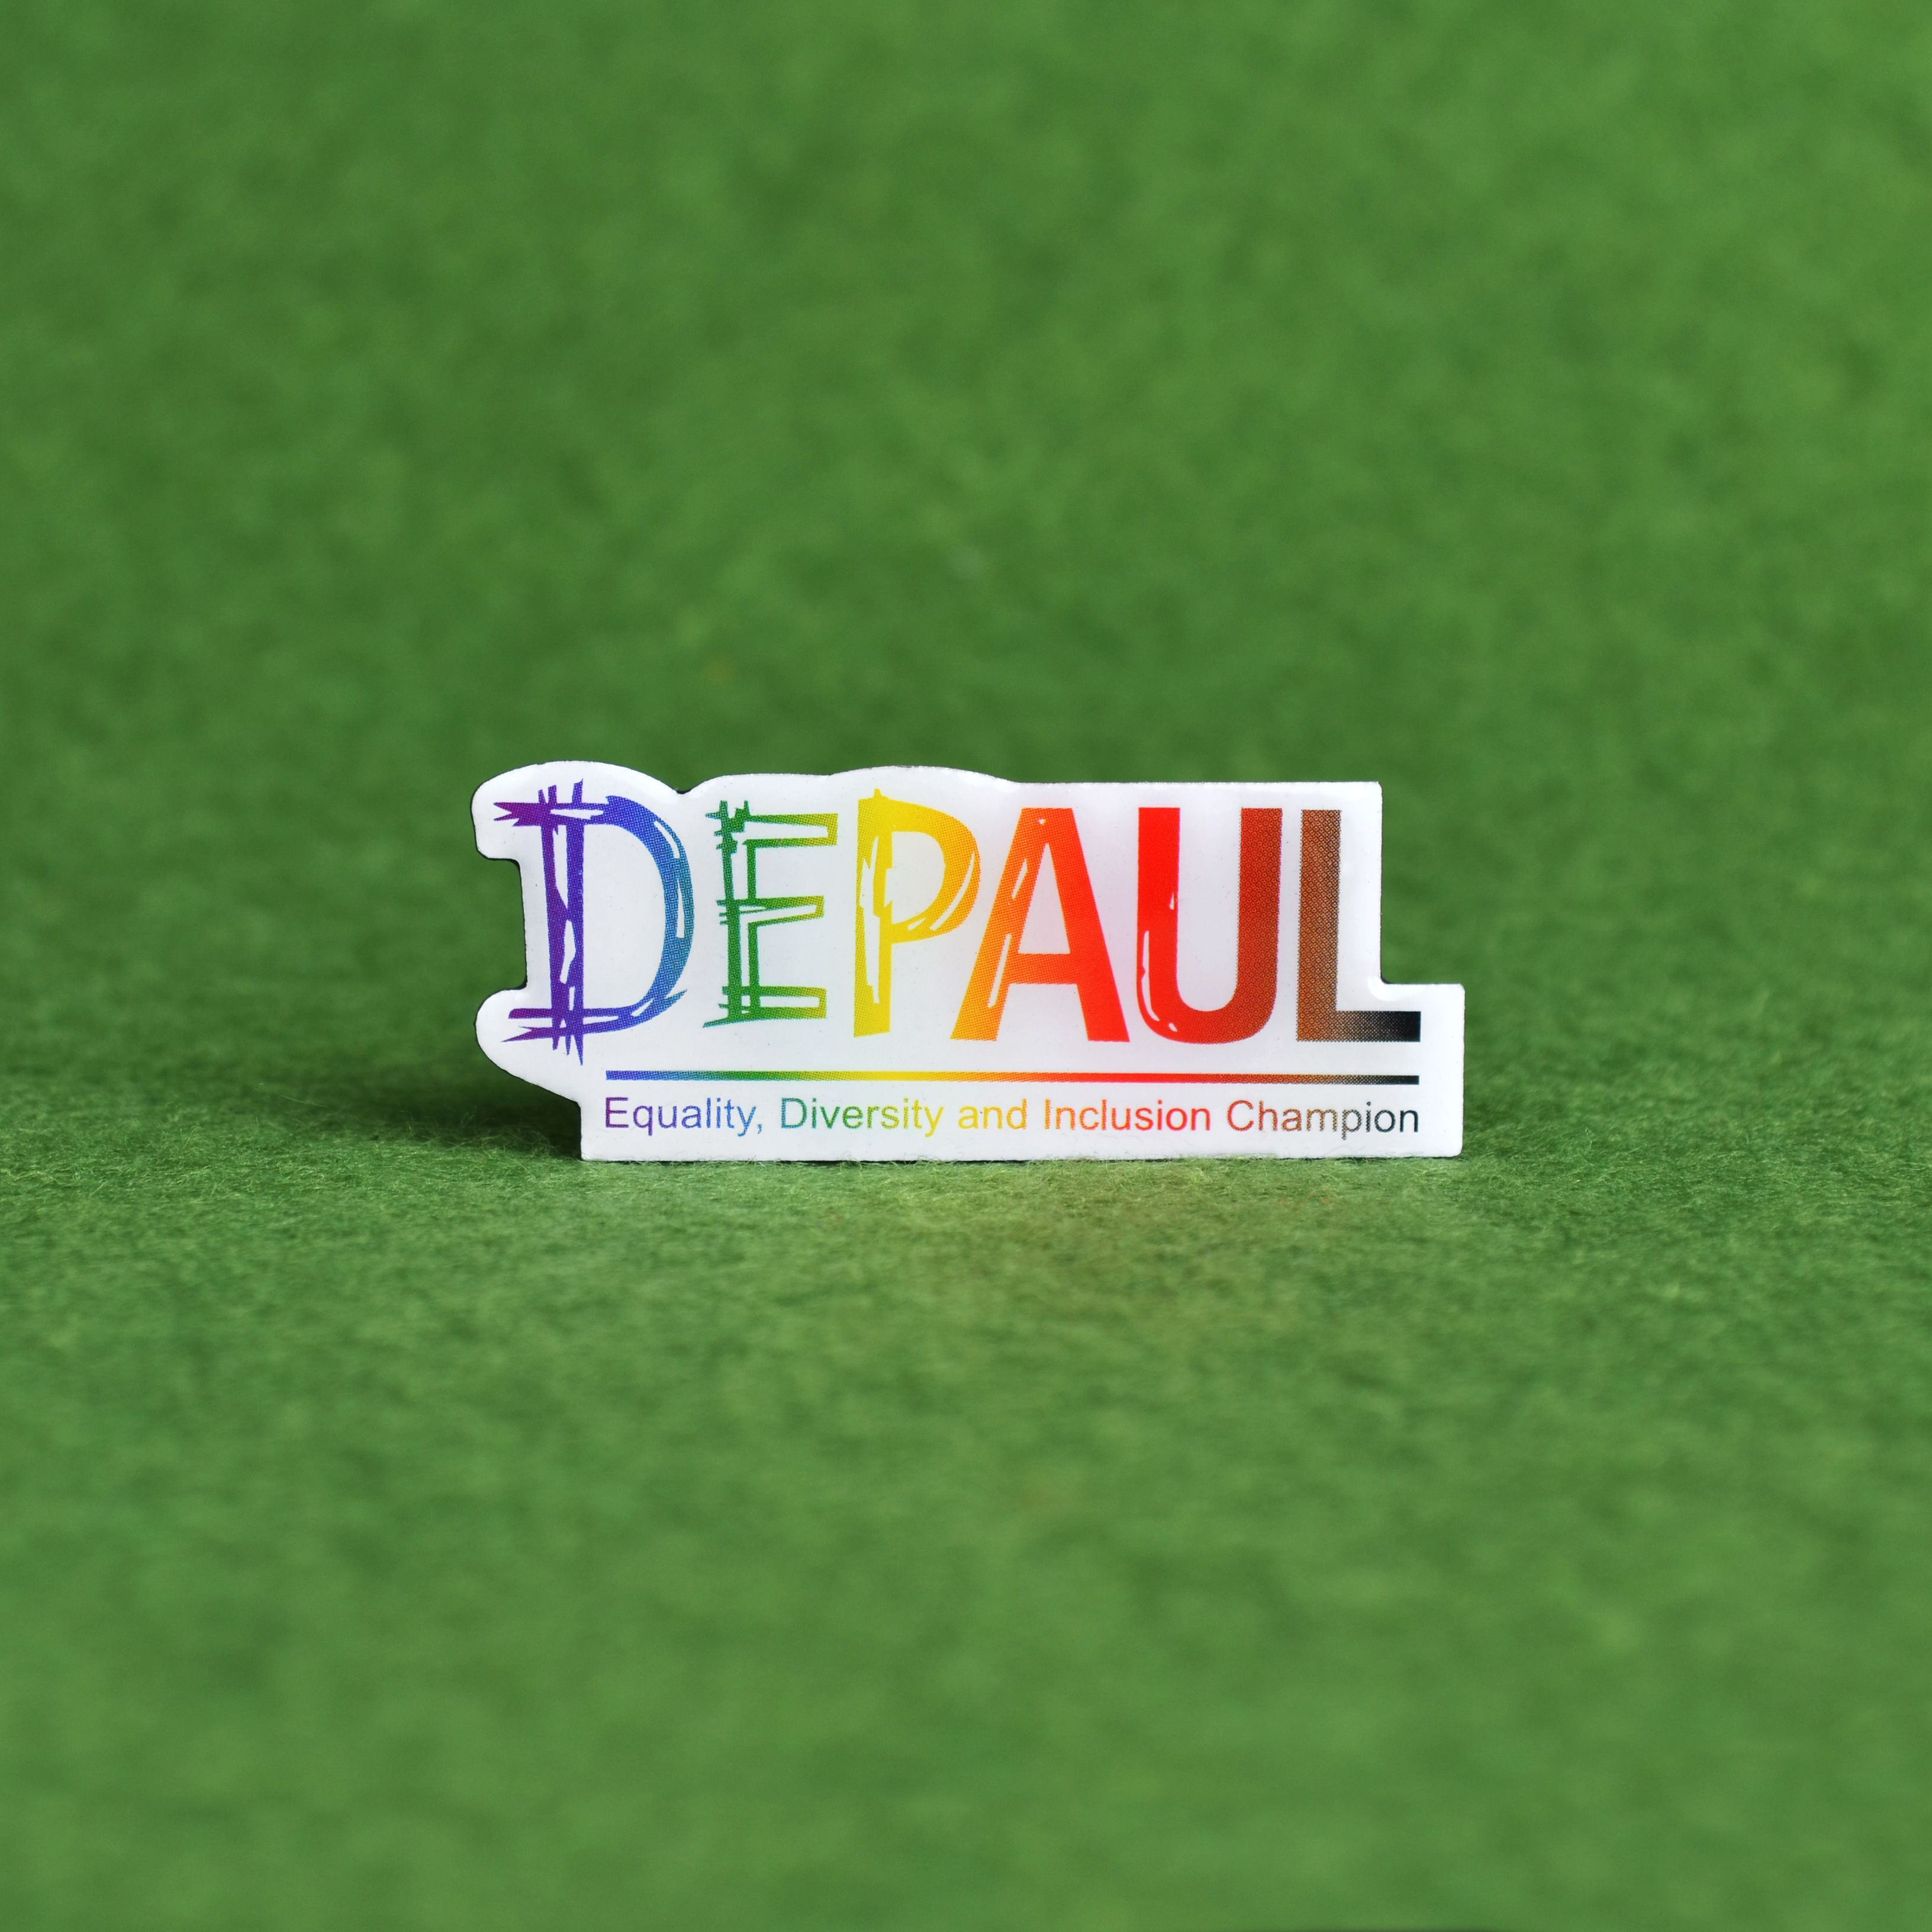 Check out this pin badge #Aspinline made for the UK charity